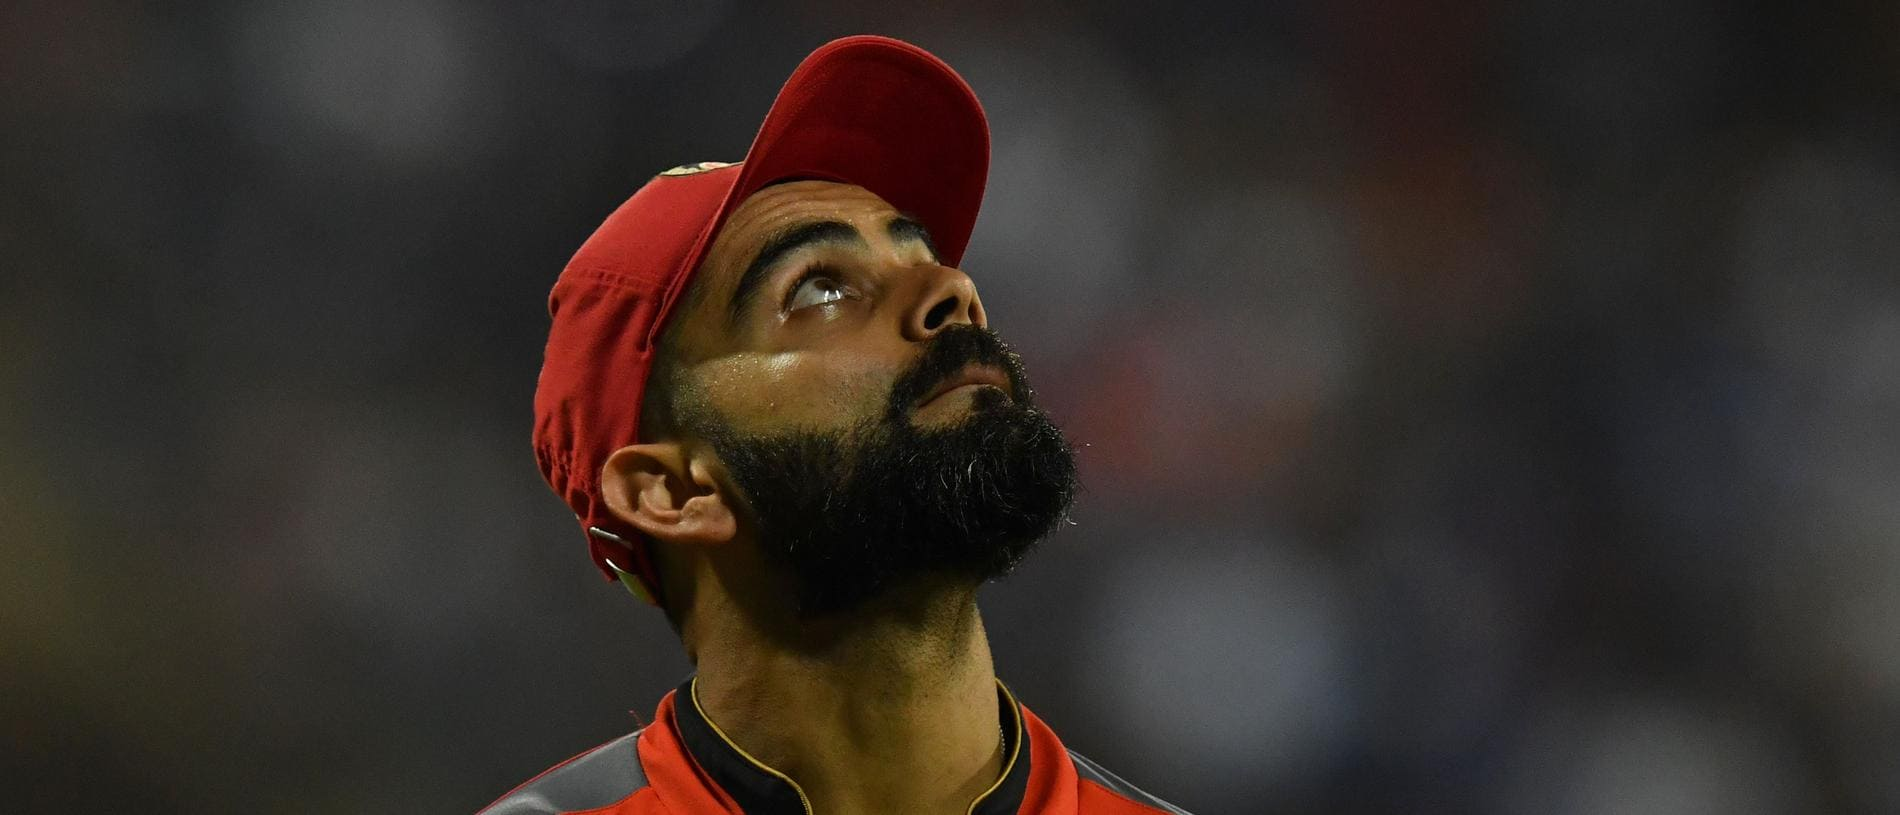 Royal Challengers Bangalore captain Virat Kohli looks on during the 2019 Indian Premier League (IPL) Twenty20 cricket match between Mumbai Indians and Royal Challengers Bangalore at the Wankhede Stadium in Mumbai on April 15, 2019. (Photo by Indranil MUKHERJEE / AFP) / ----IMAGE RESTRICTED TO EDITORIAL USE - STRICTLY NO COMMERCIAL USE----- / GETTYOUT